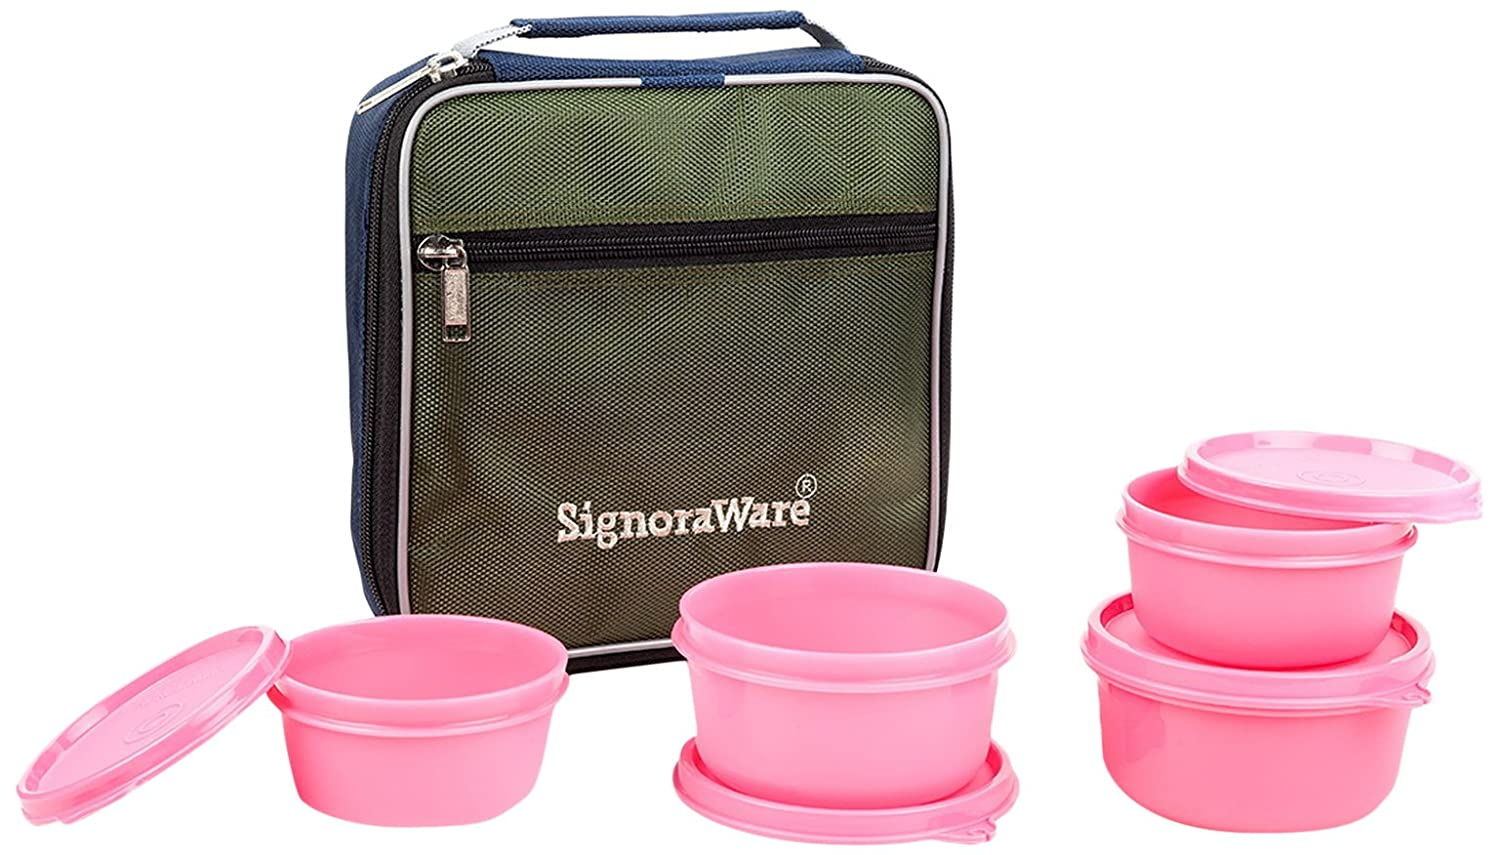 Signoraware Fresh Lunch Box With Bag, Pink